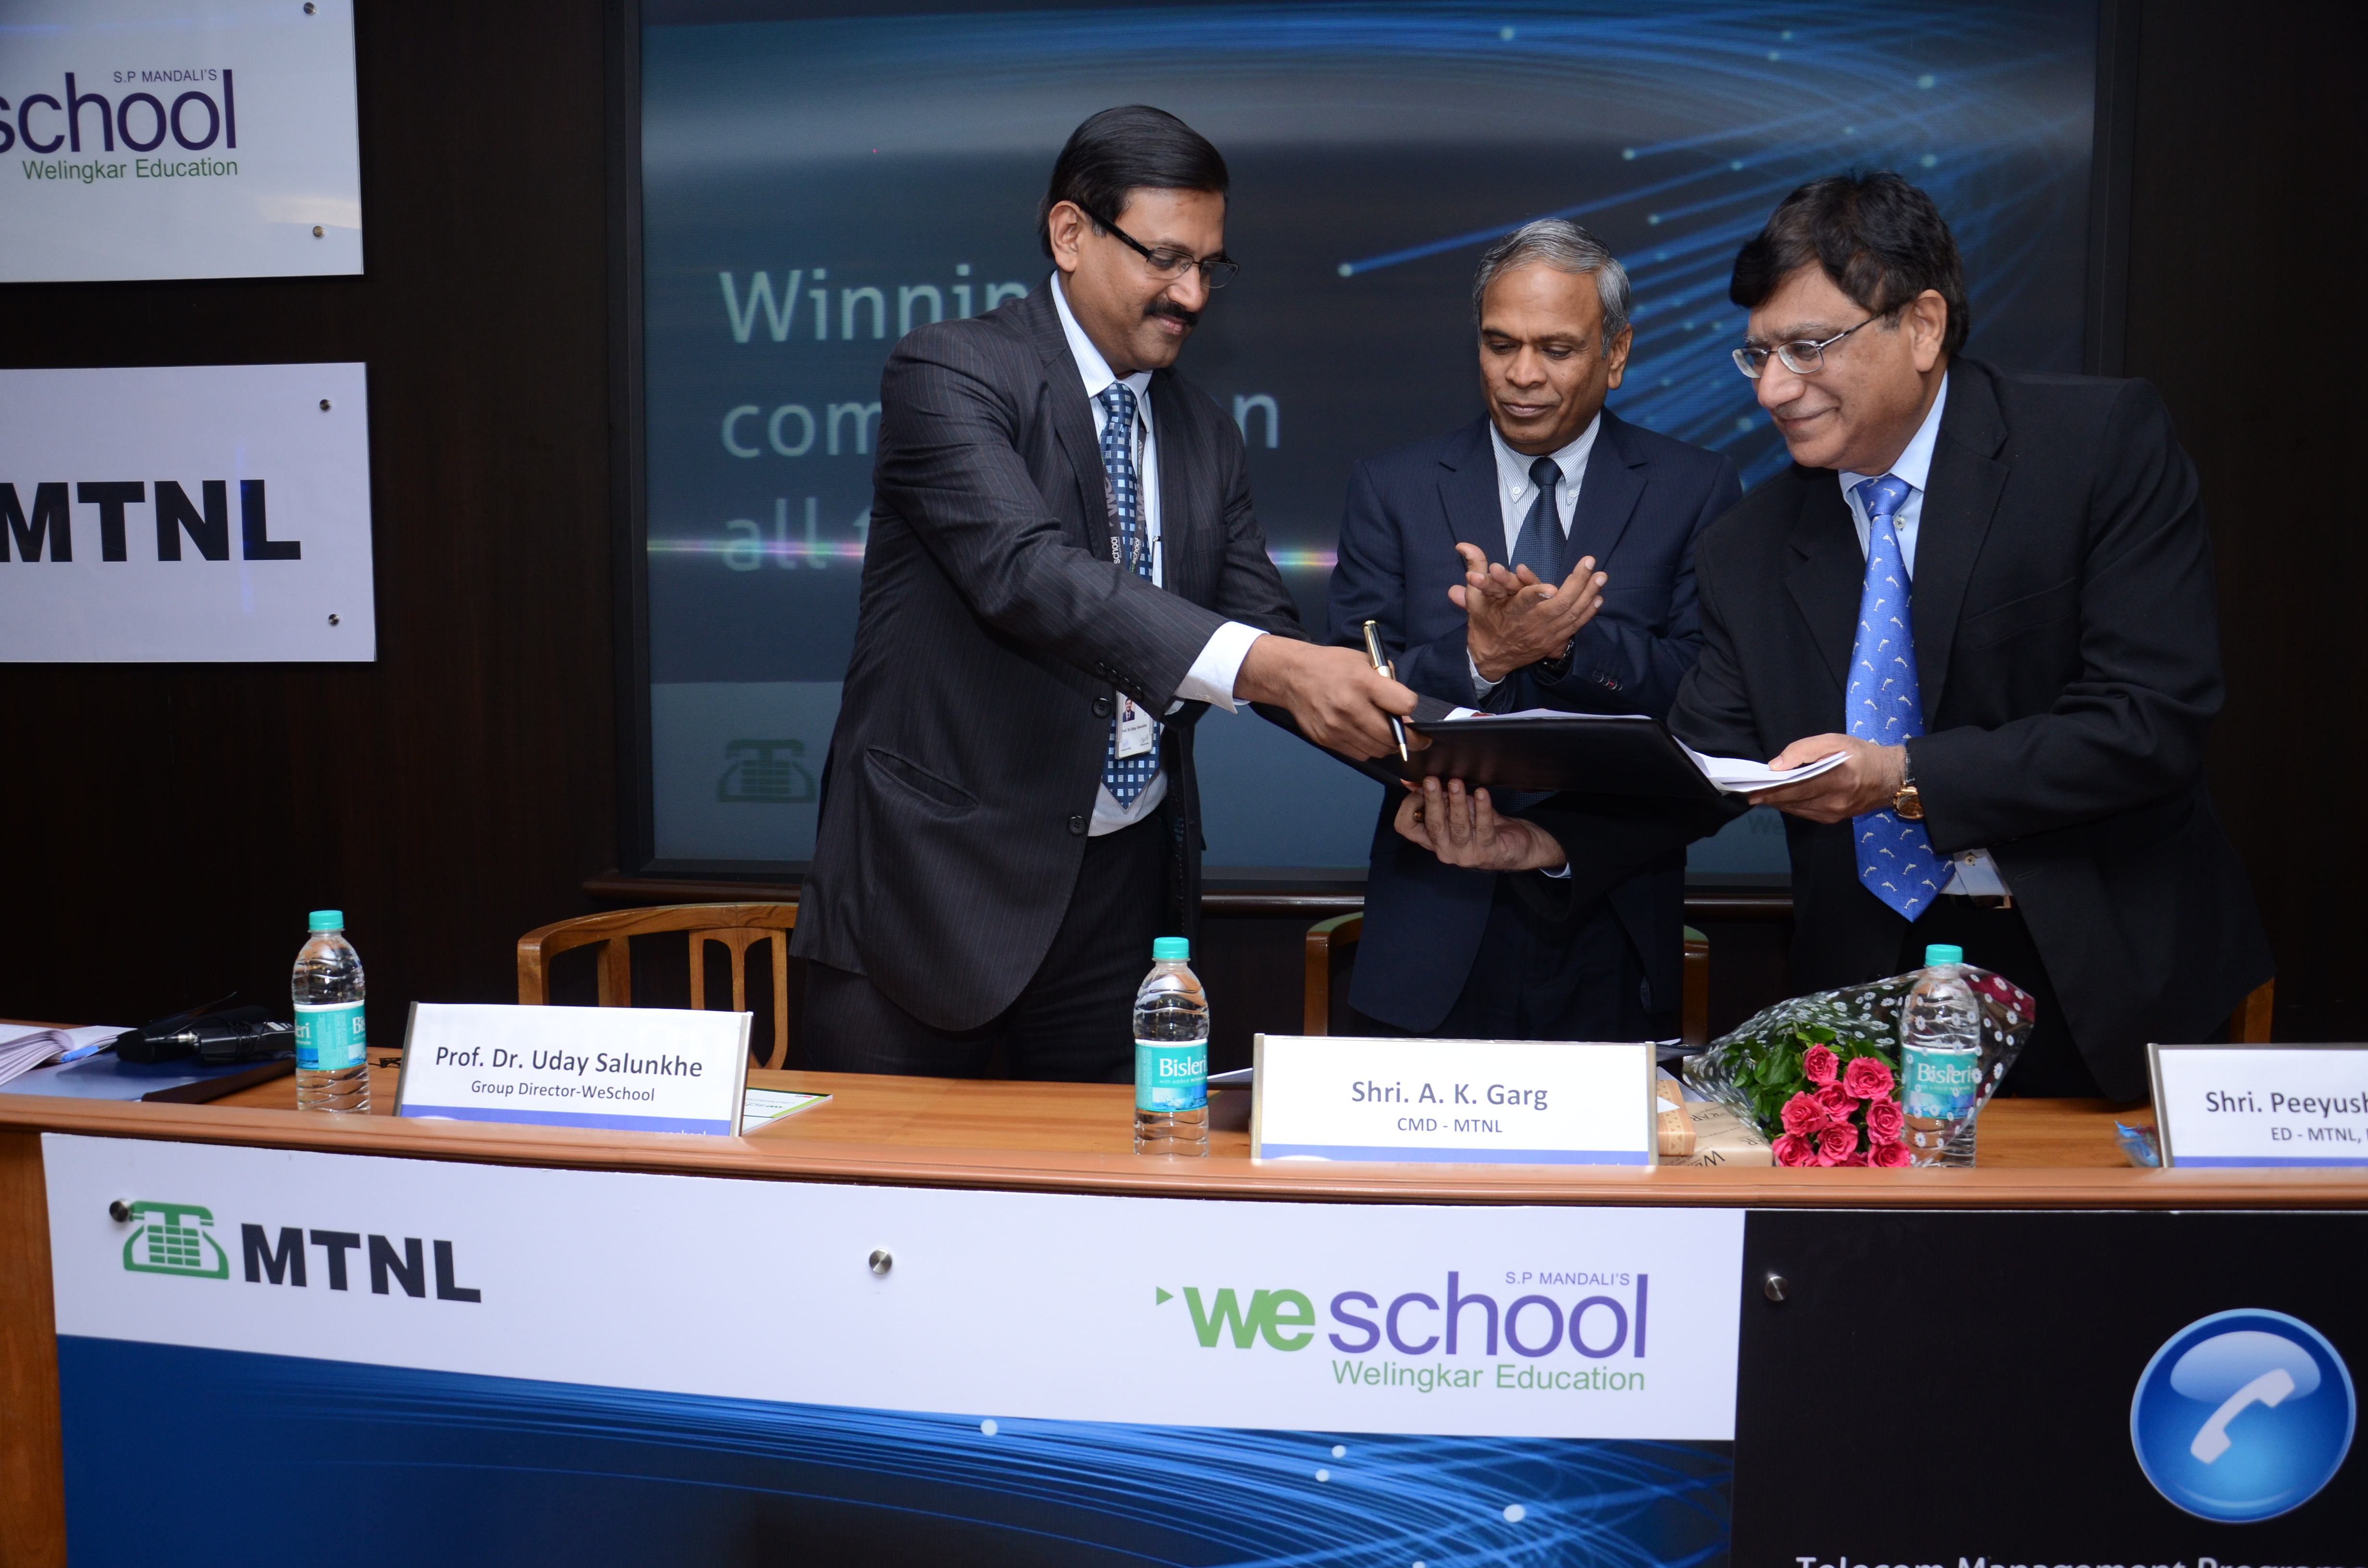 MTNL, the telecom PSU joins hands with WeSchool to launch new programs in Telecom Management